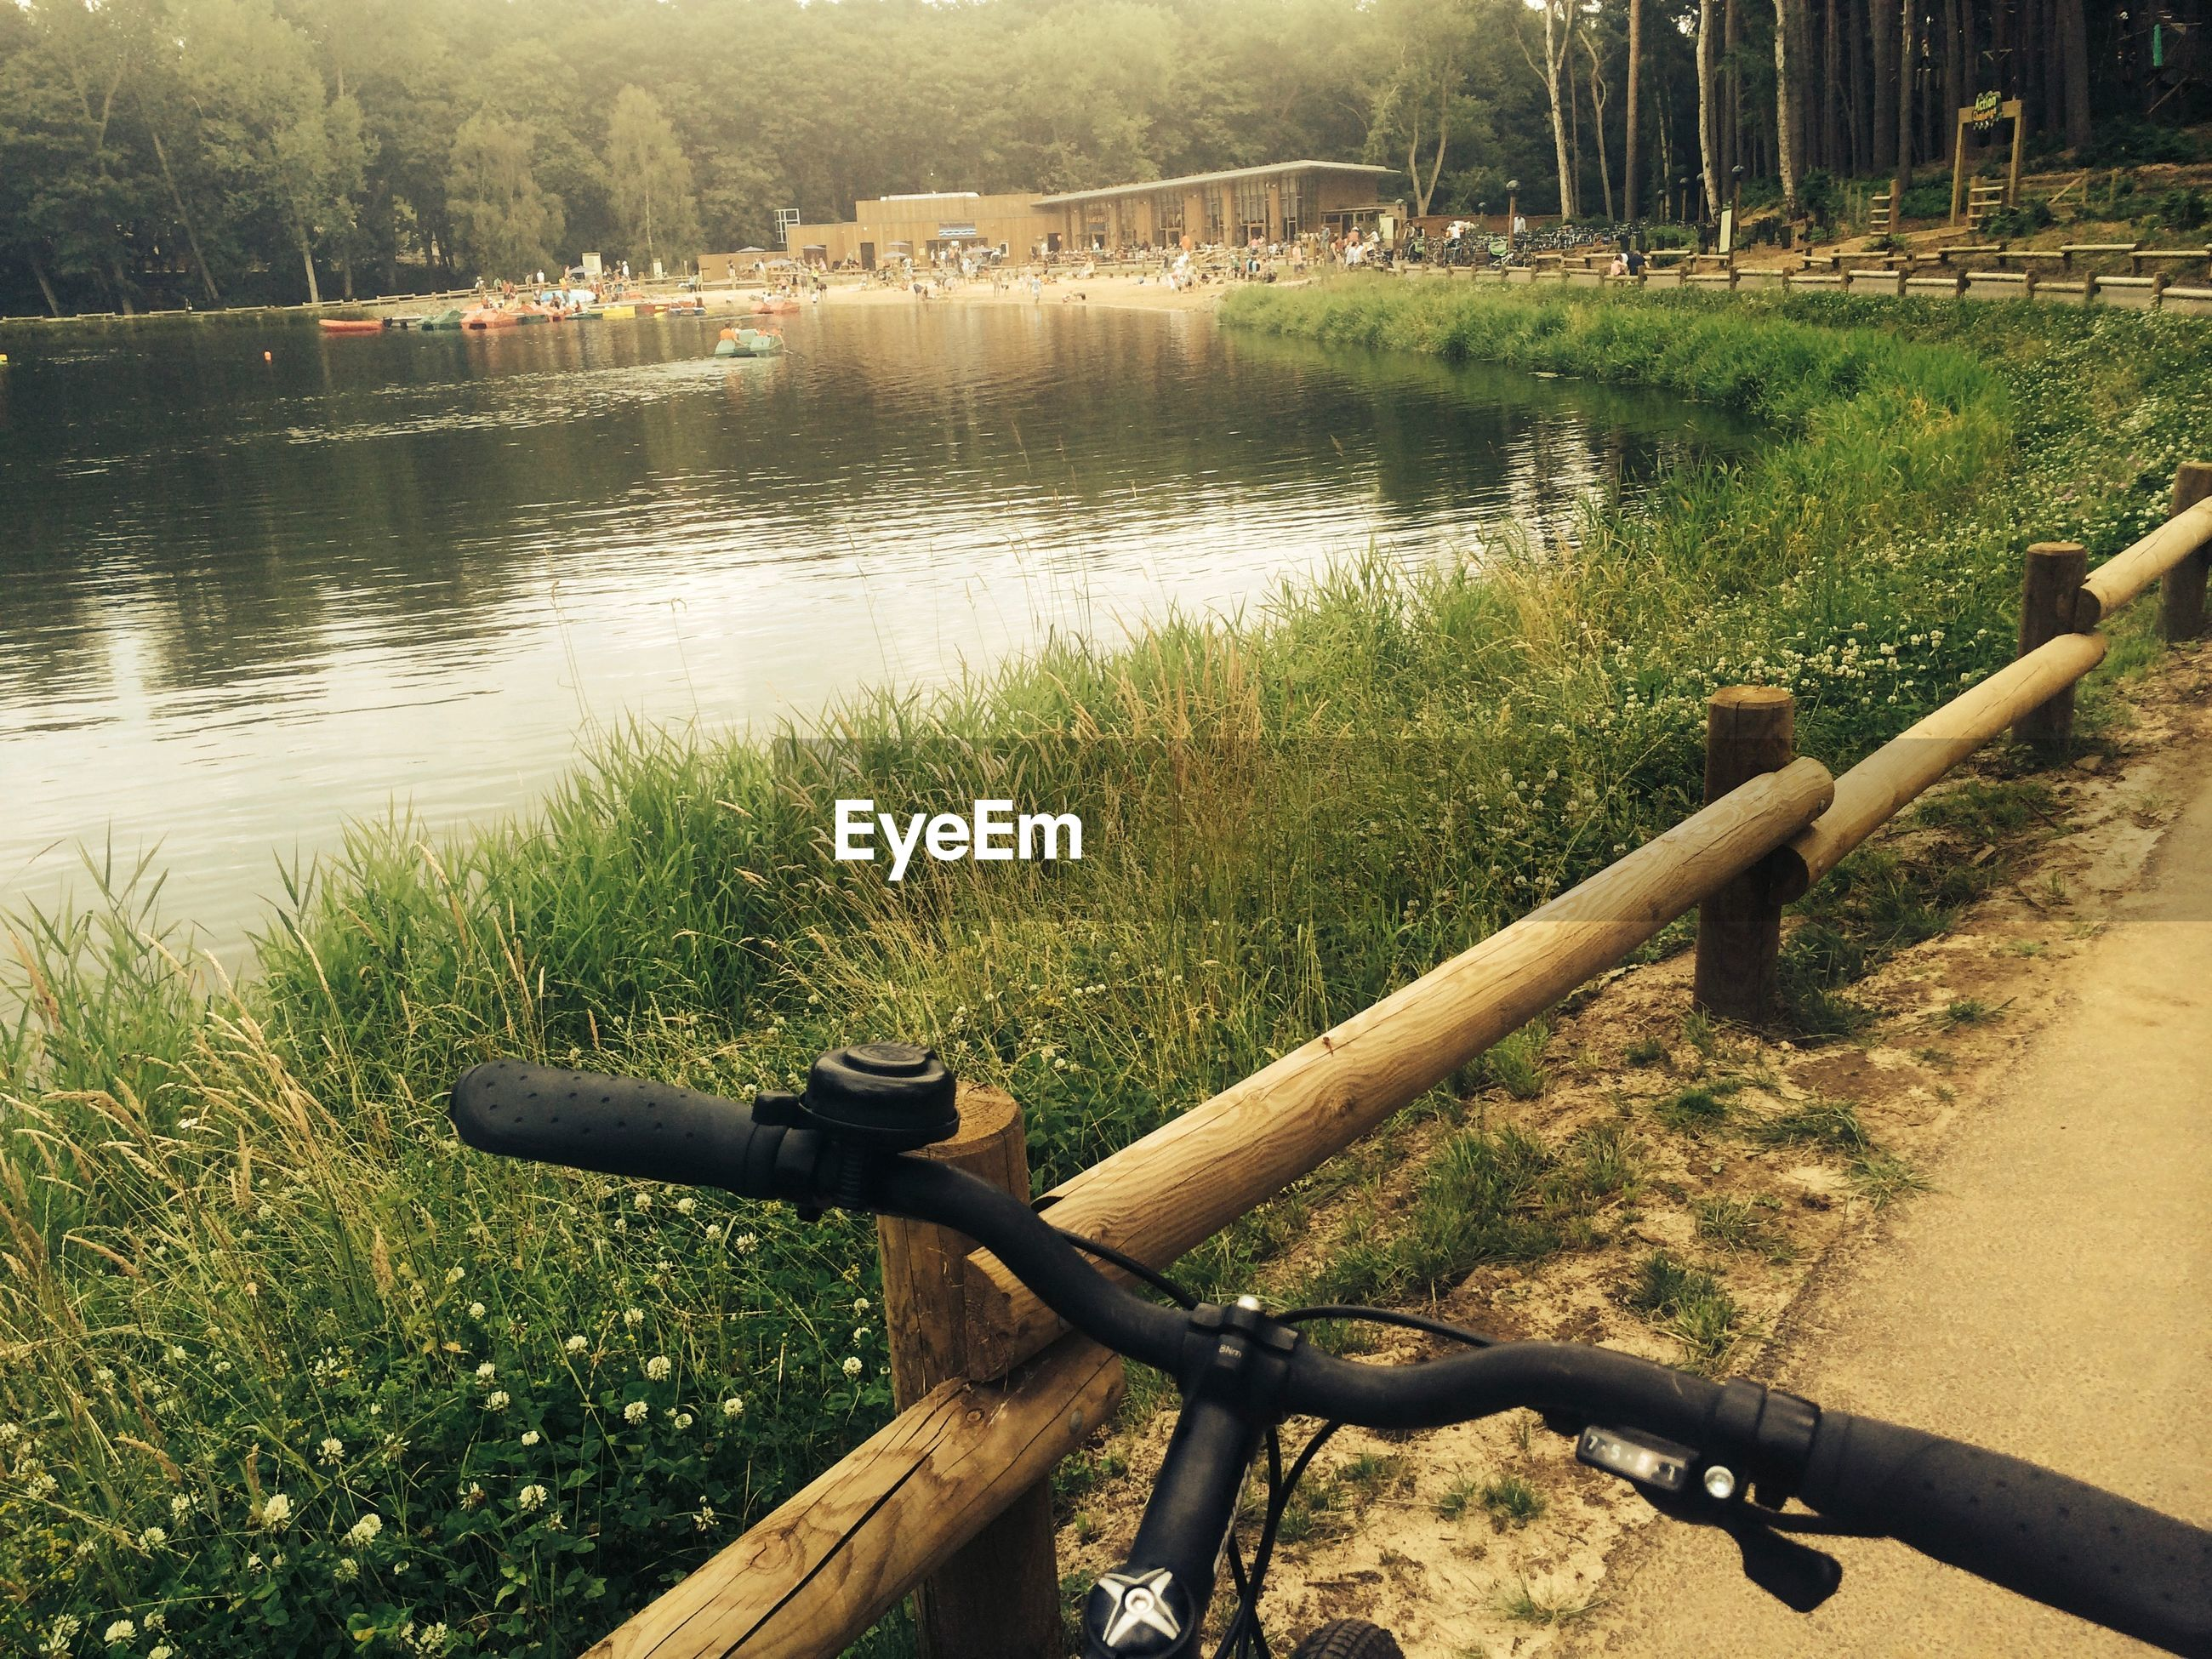 Cropped image of bicycle on road by lake